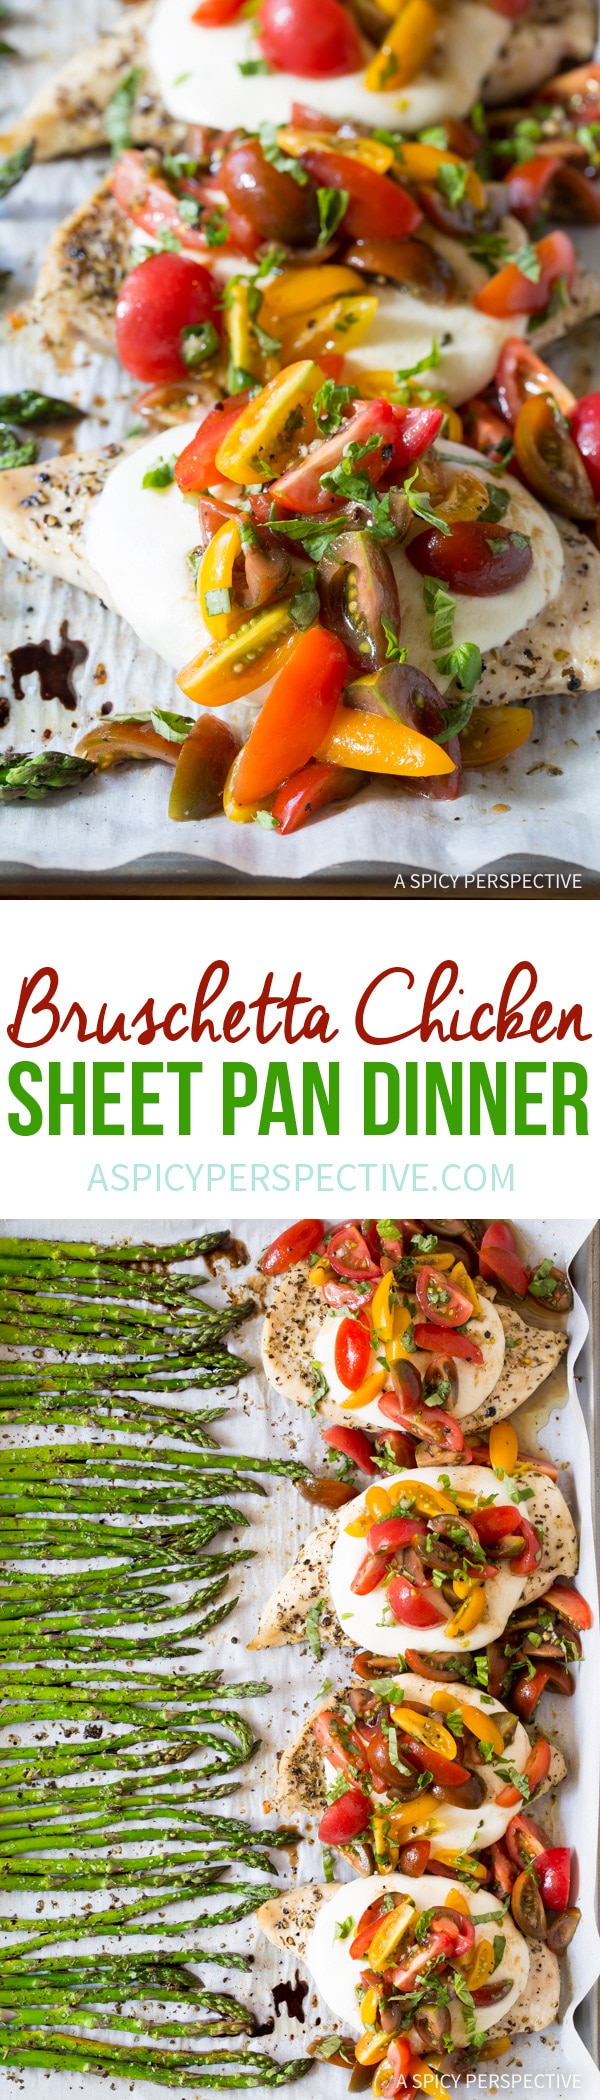 Cheesy Bruschetta Chicken Sheet Pan Dinner Recipe